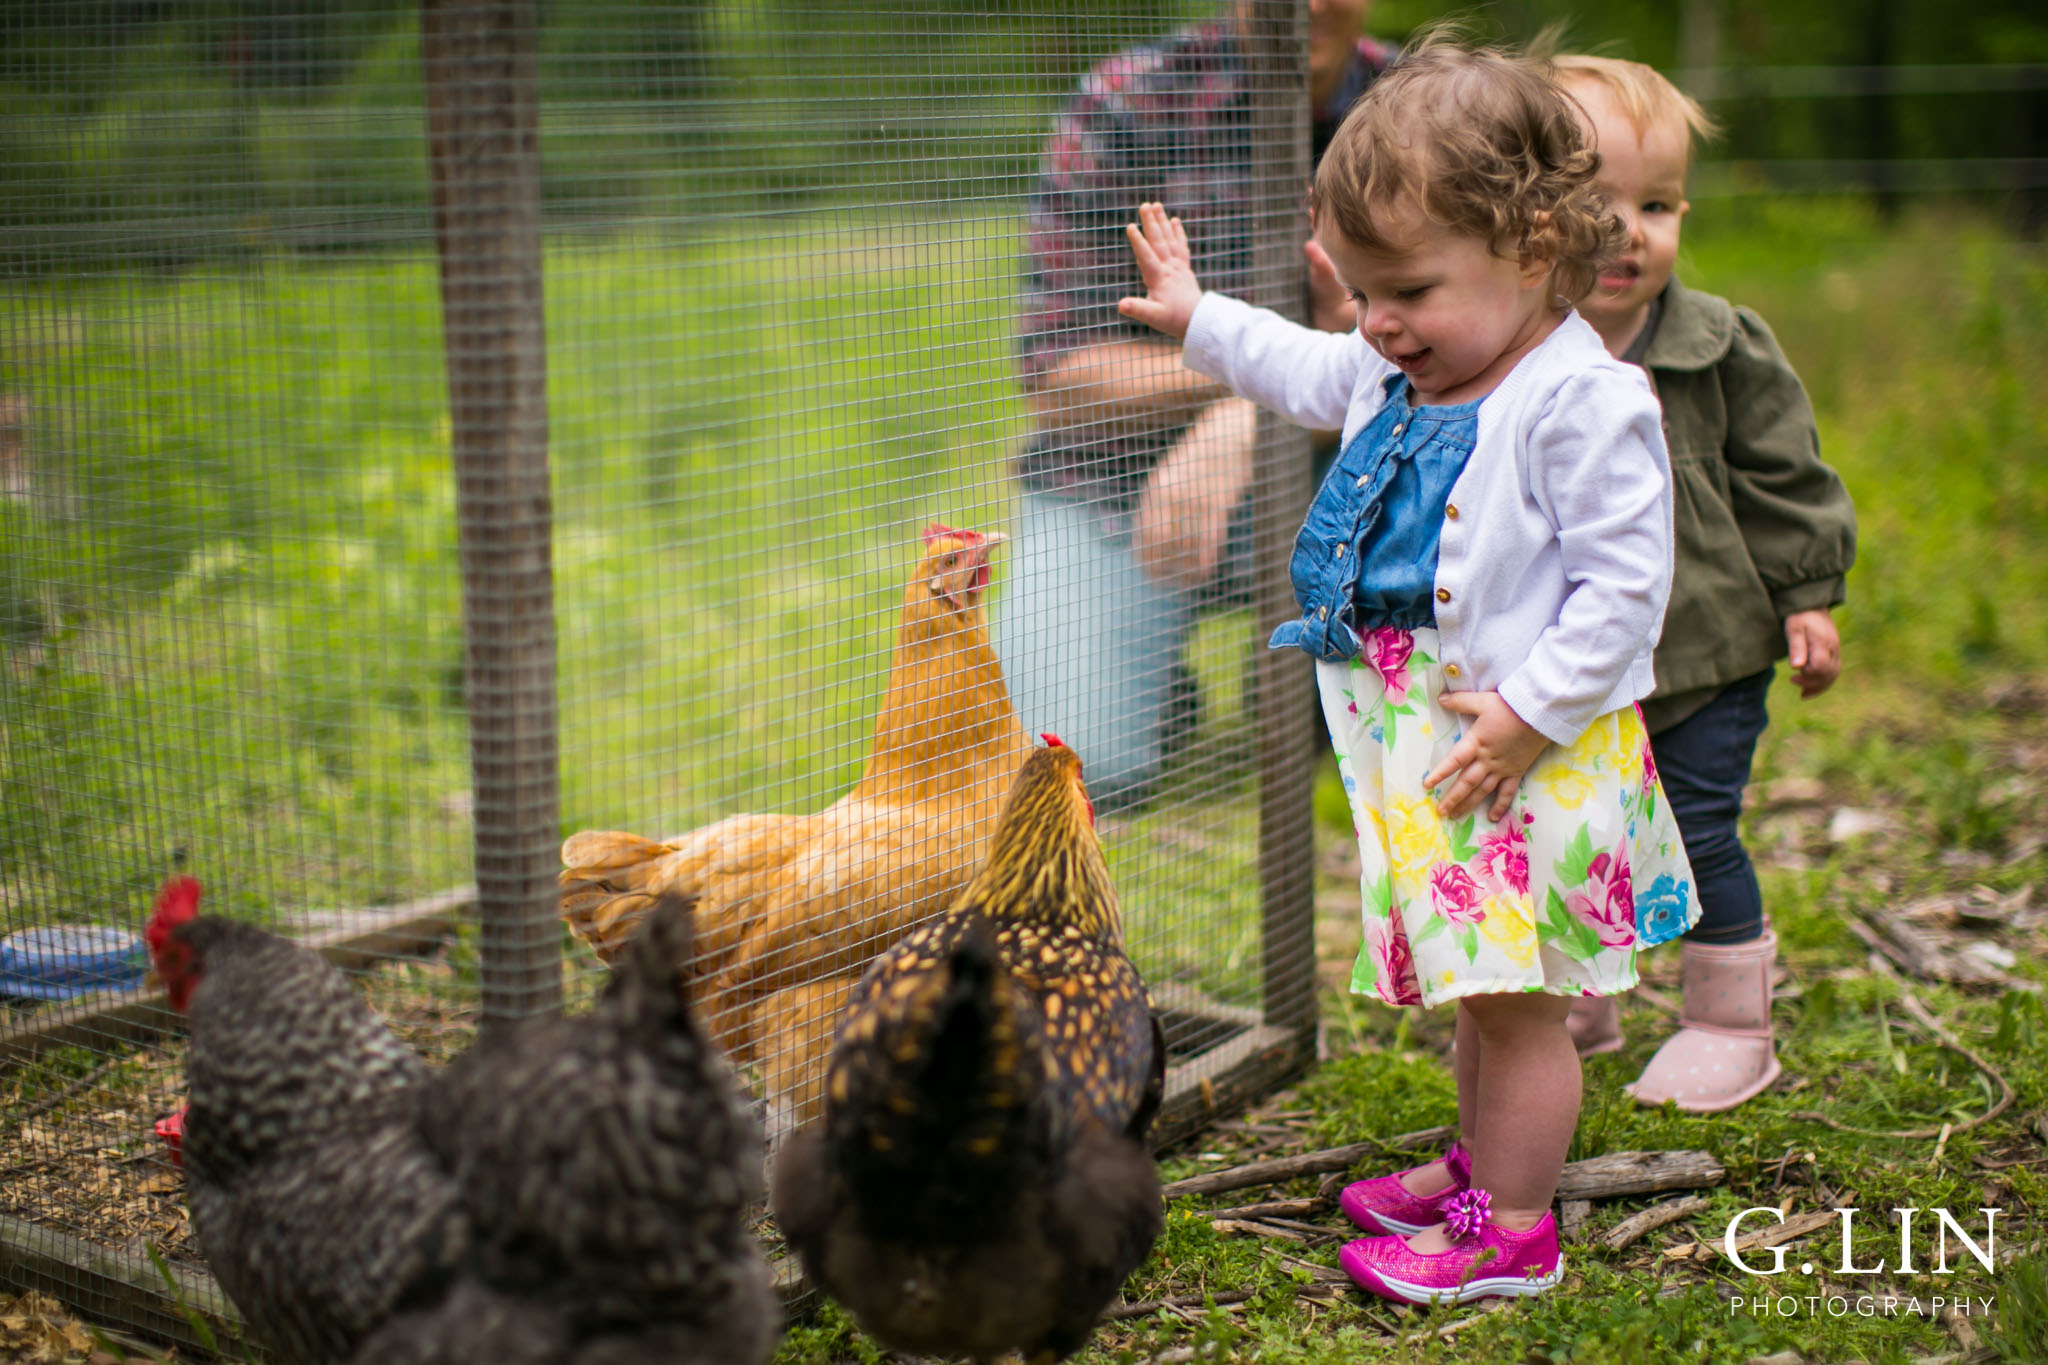 G. Lin Photography | Raleigh Event Photographer | Girl on farm looking at chickens